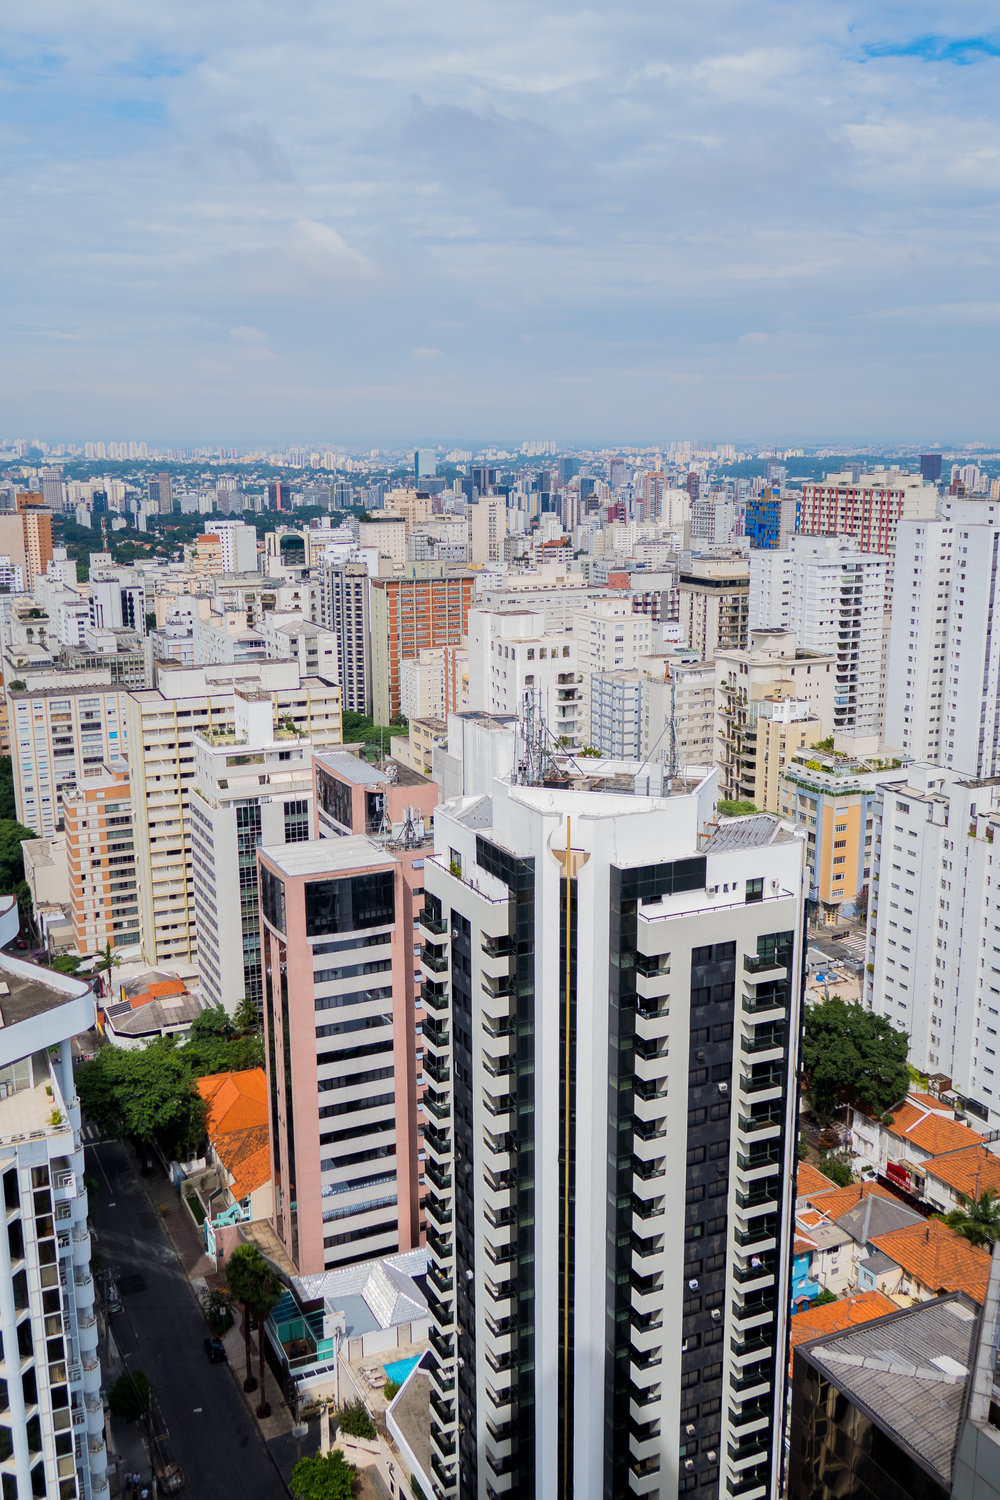 Sao Paulo from the Renaissance Hotel